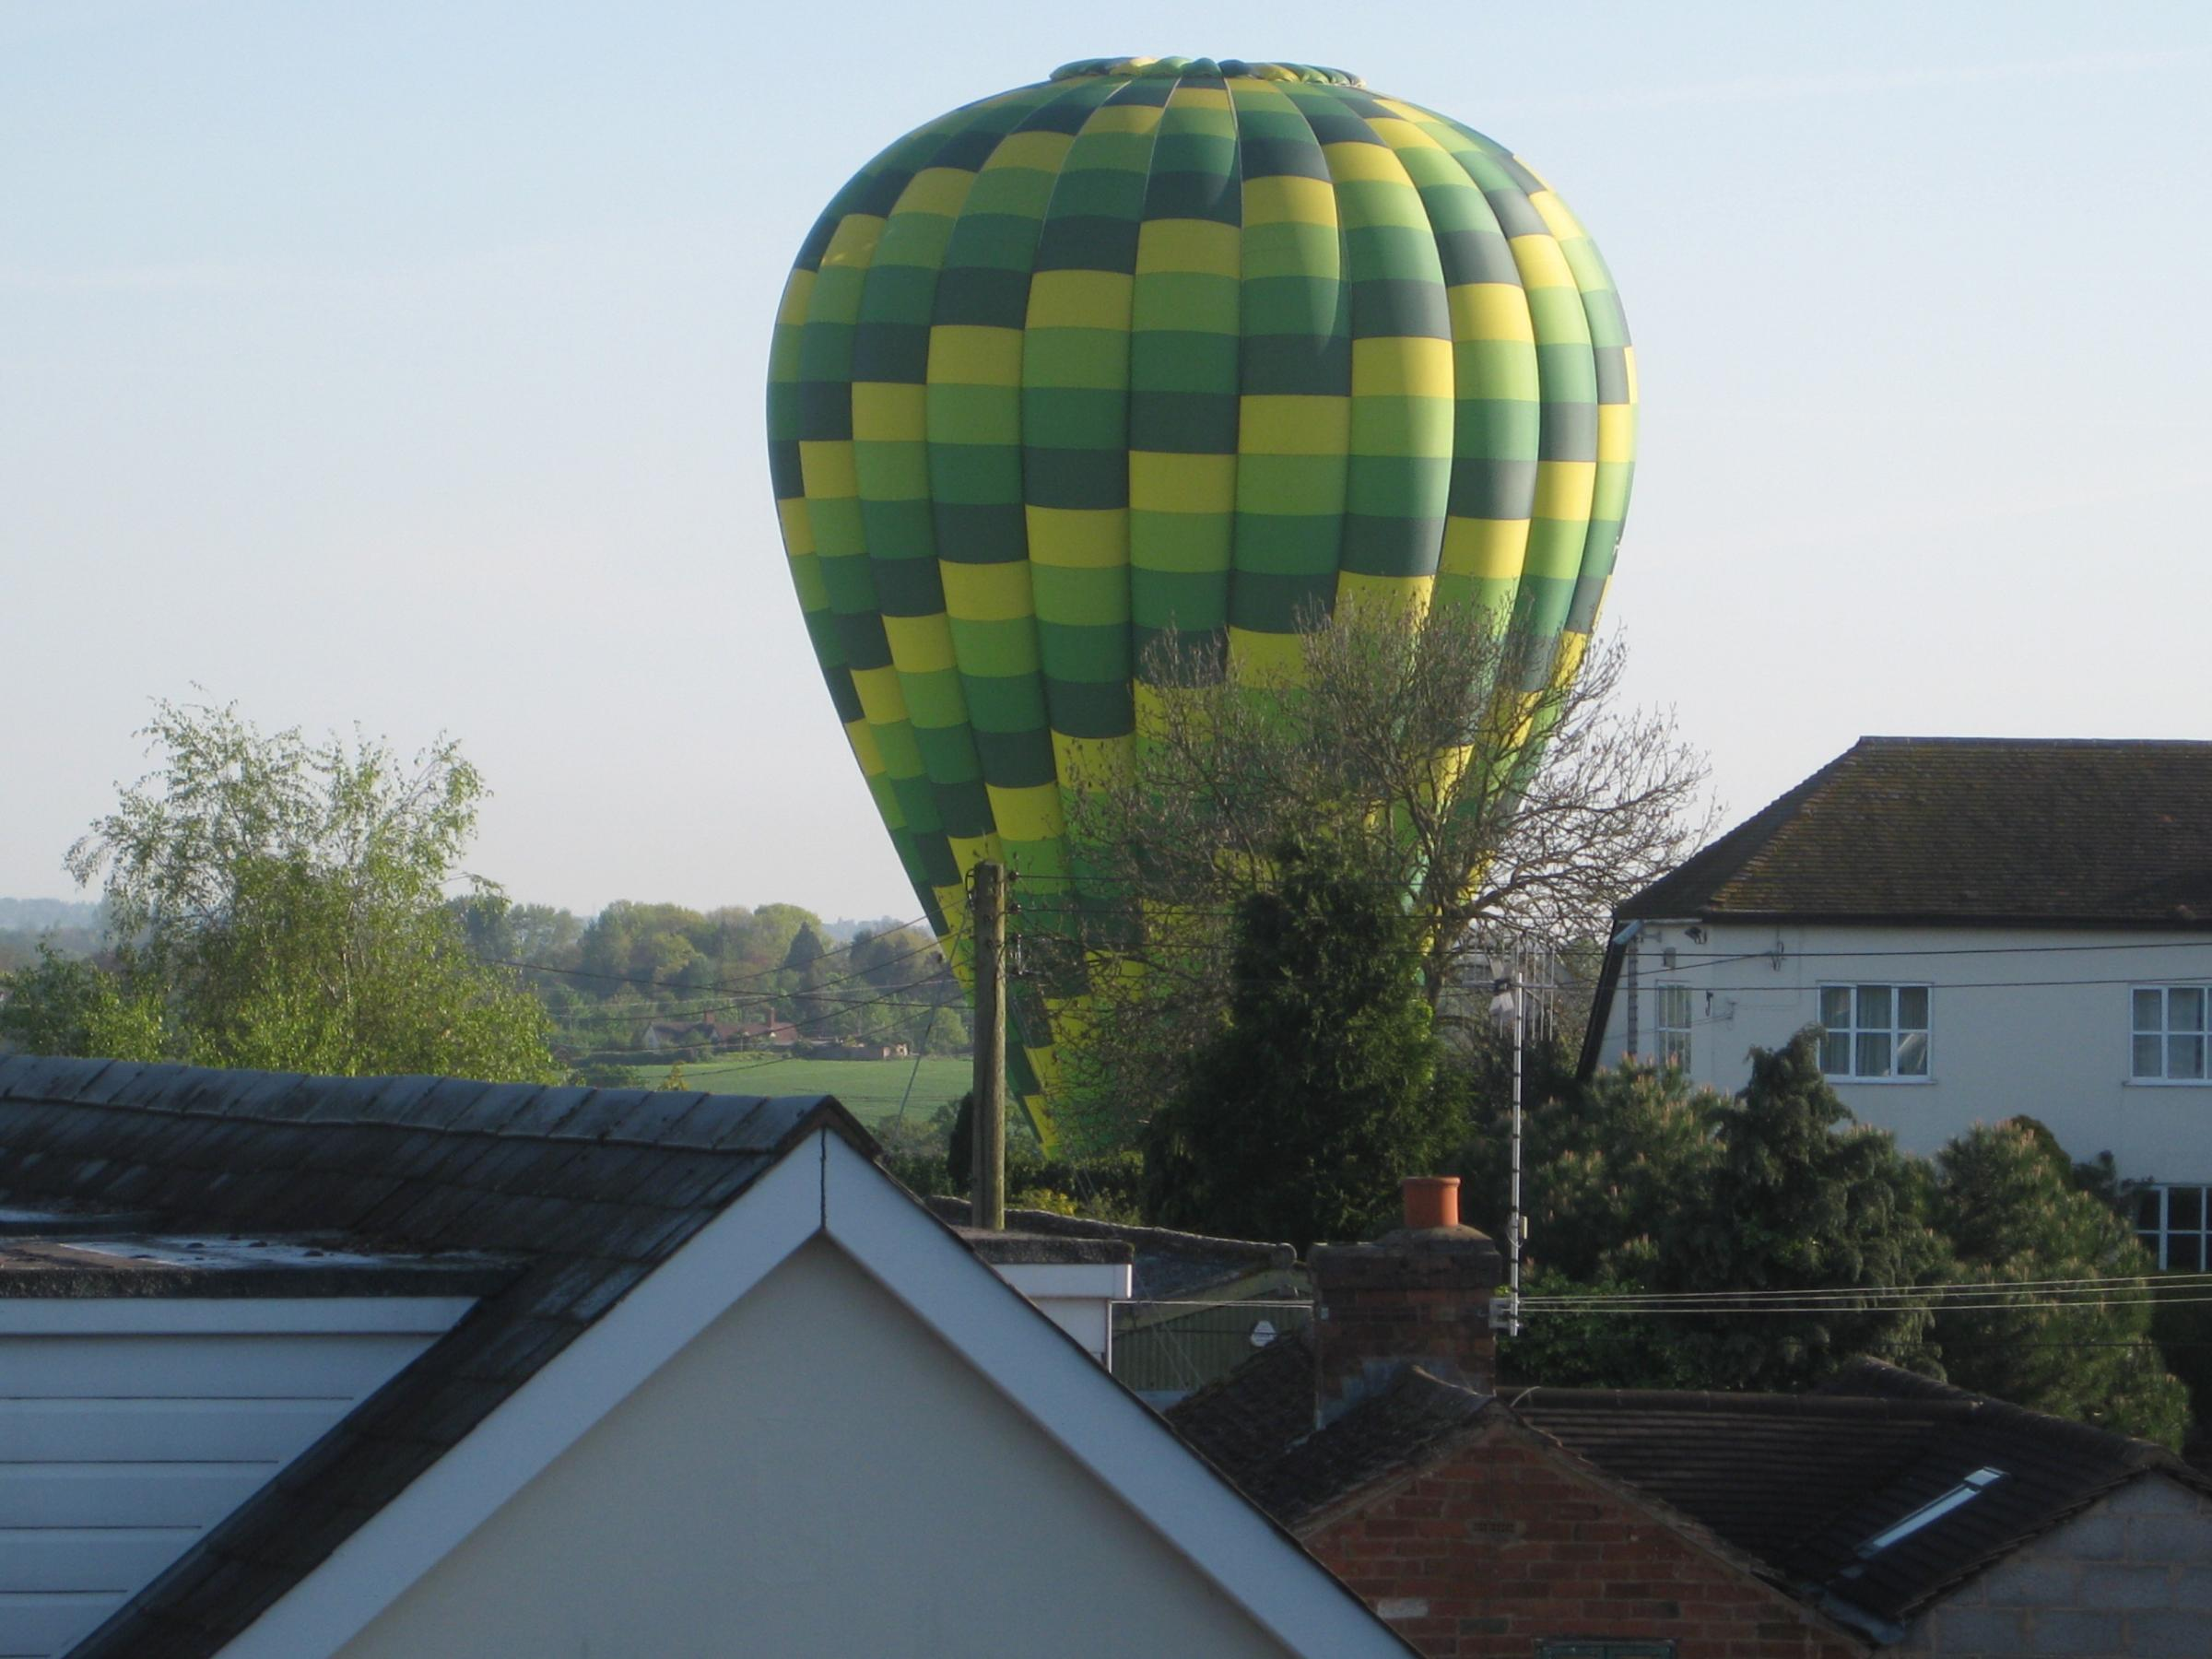 The air balloon landed in Lower Broadheath on Saturday morning. Picture by Dag Smith (s)